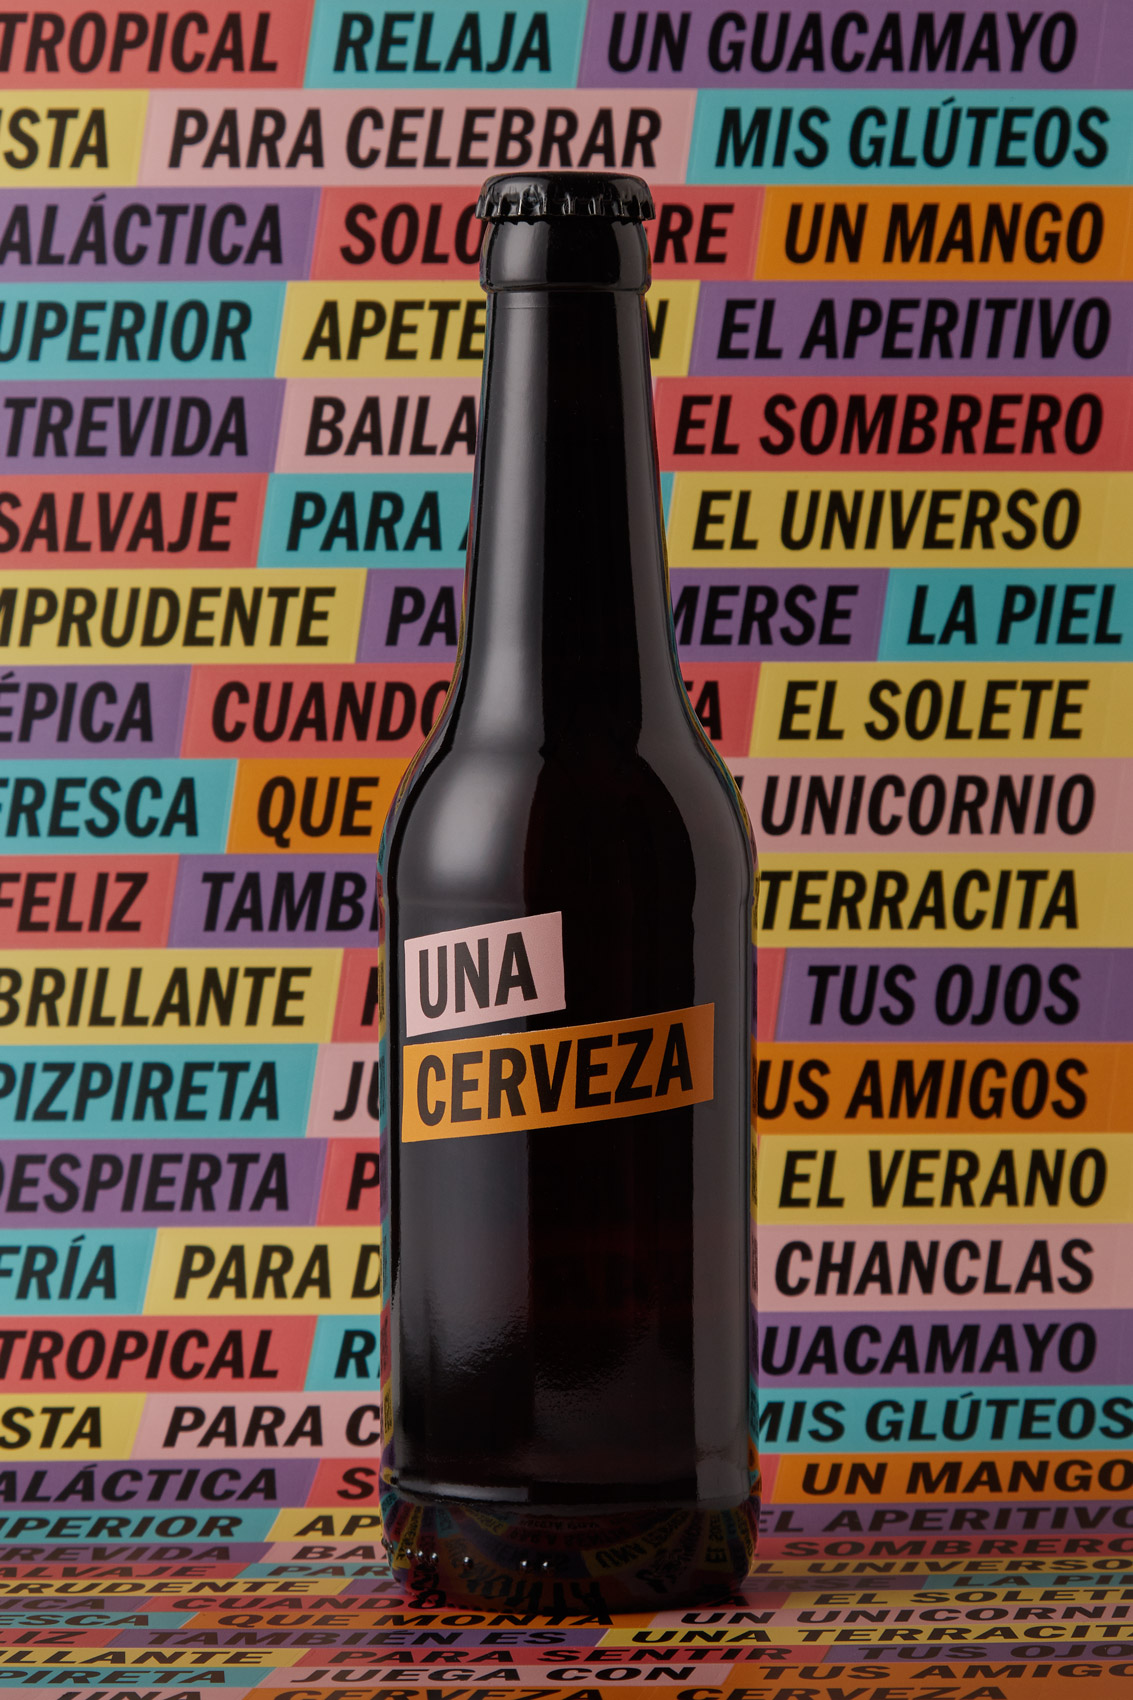 Packaging Label design Una Cerveza Beer fmcg fast moving consumer goods Vibranding graphic design